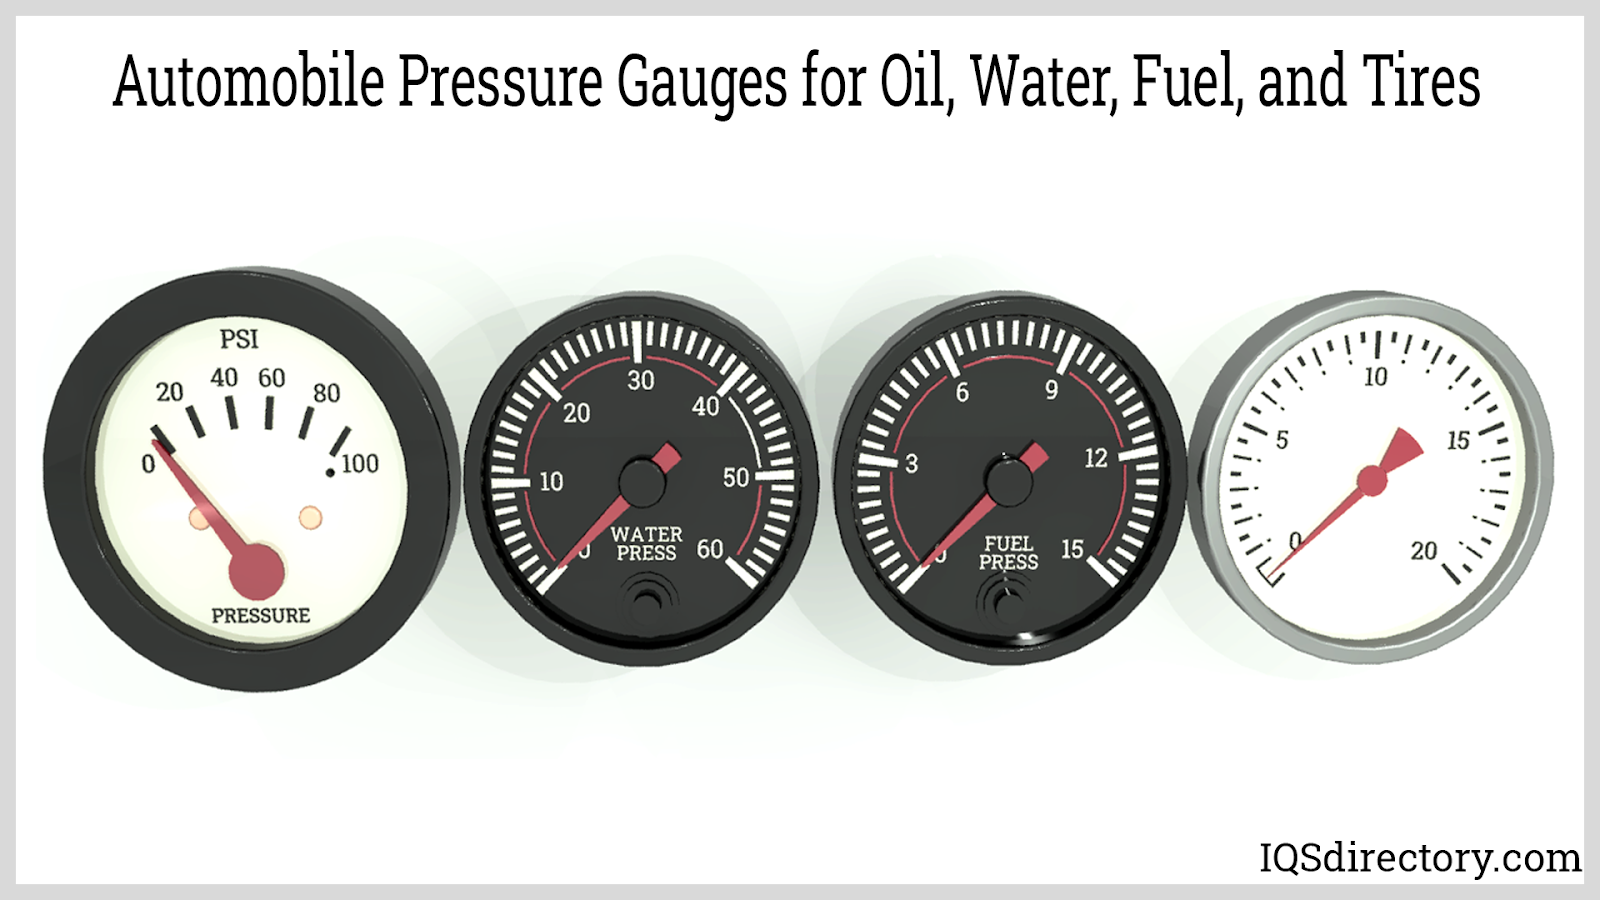 Automobile Pressure Gauges for Oil, Water, Fuel, and Tires